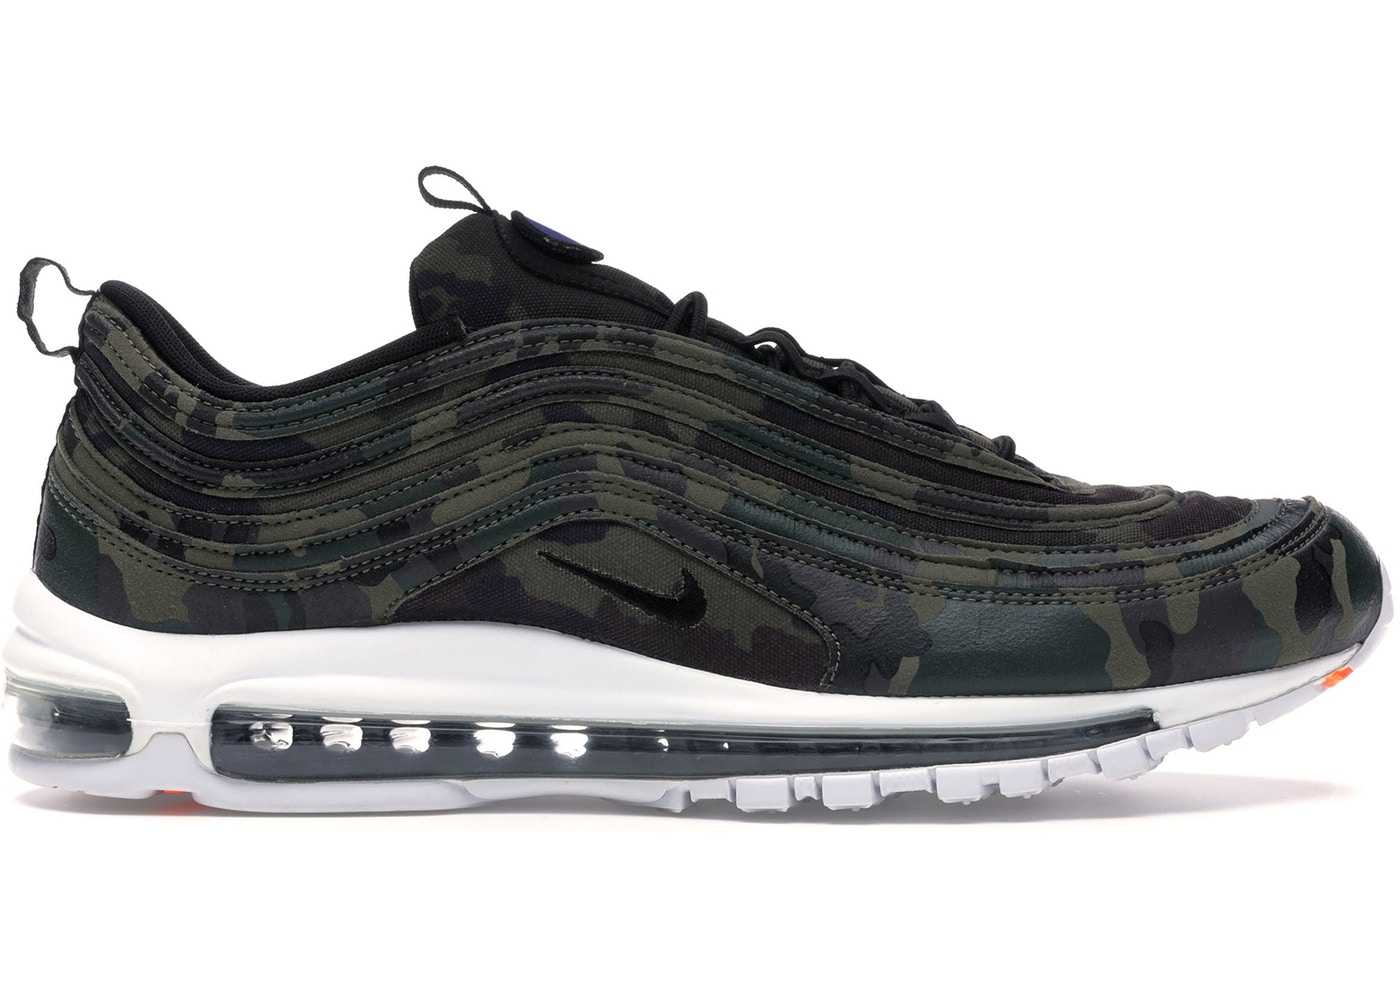 énorme réduction 84f7f 9d8d0 Air Max 97 Country Camo (France)